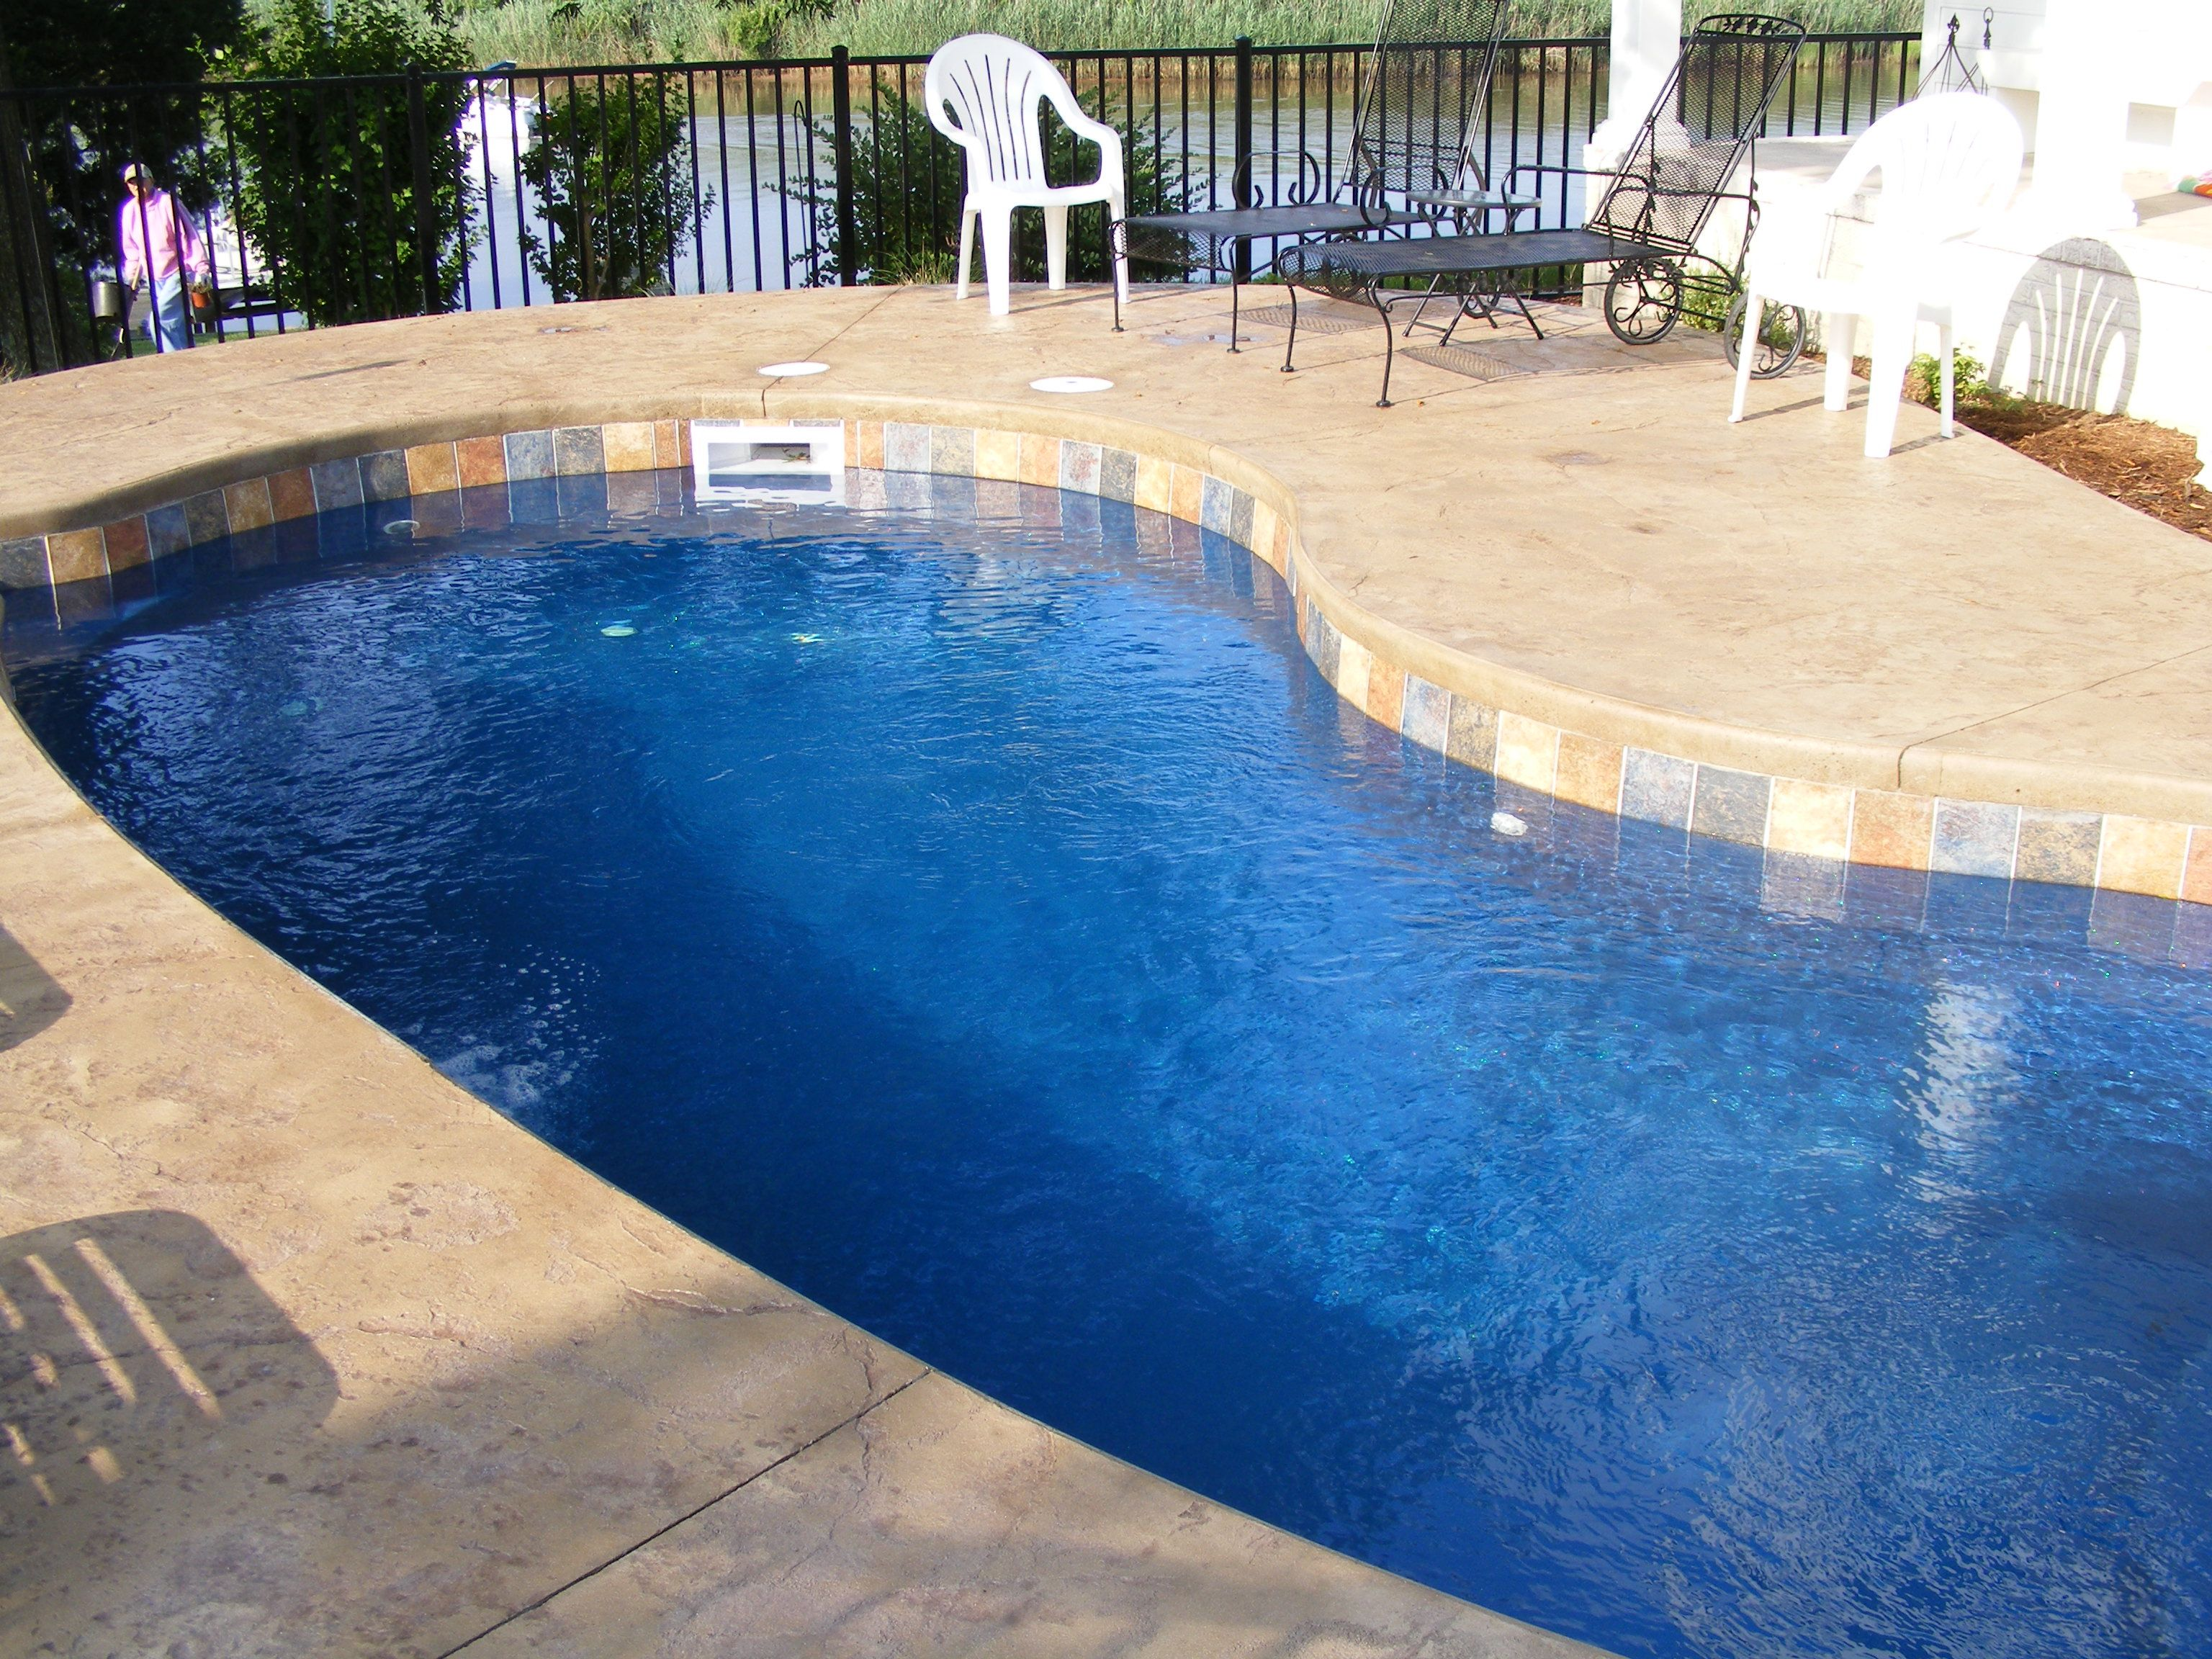 Fiberglass pool coping paver vs cantilevered concrete Fibreglass pools vs concrete pools